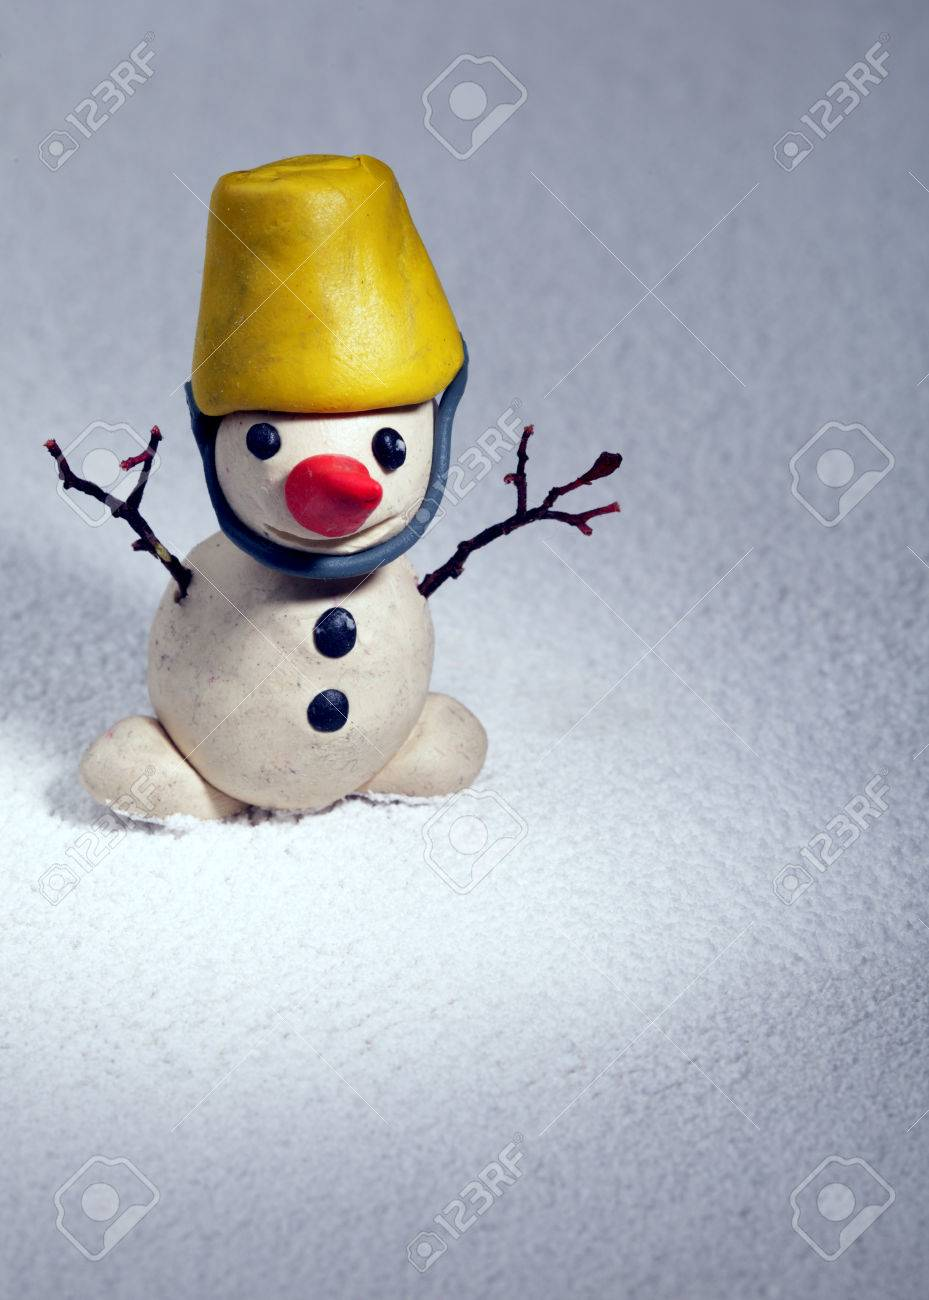 Little Snowman Made Of Plasticine Standing On Real Snow Christmas Gift Hack Stock Photo